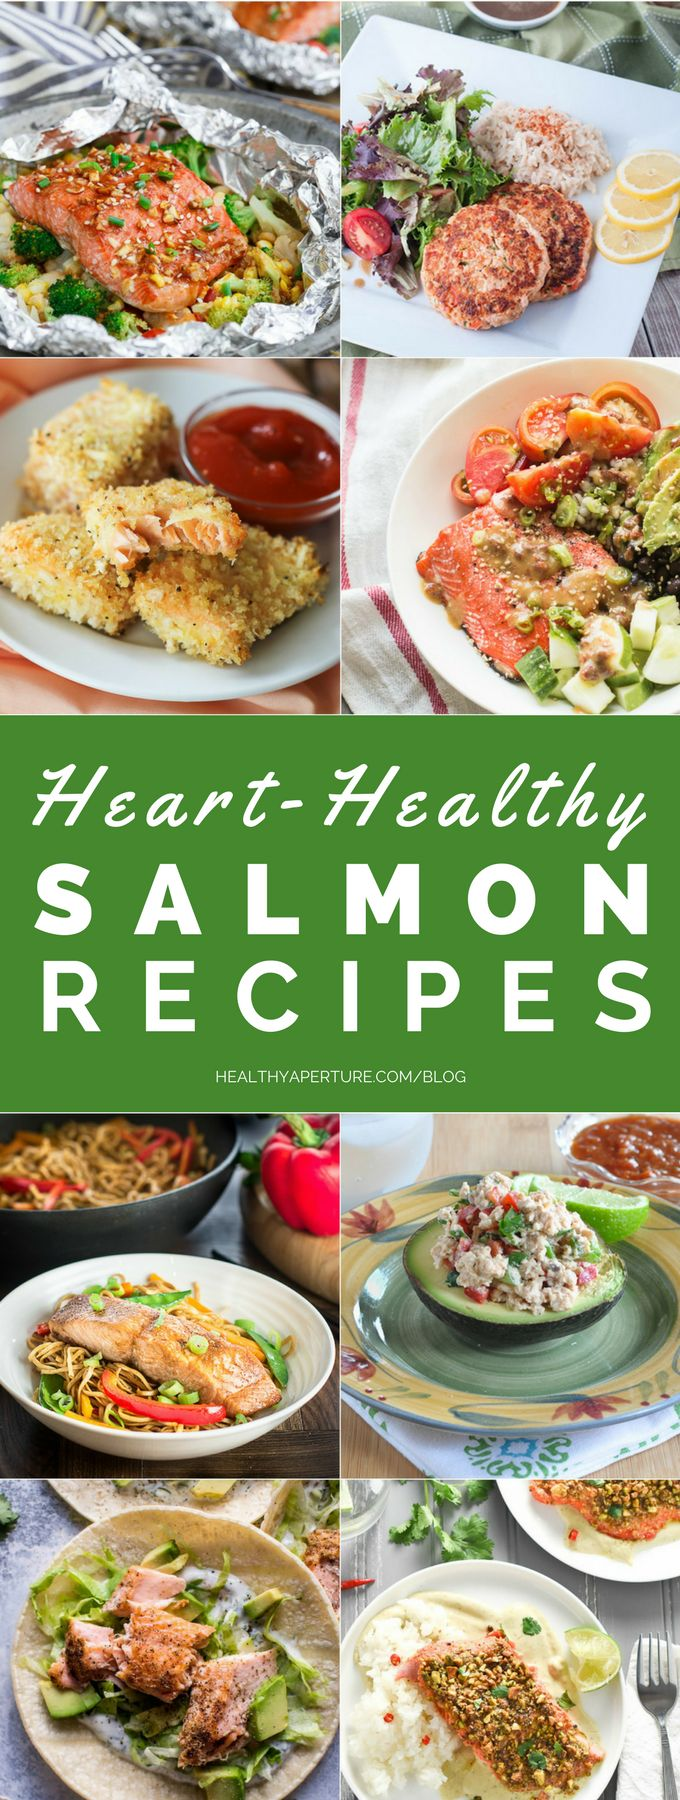 These Heart-Healthy Salmon Recipes are perfect for a quick and easy lunch or dinner on a busy day!